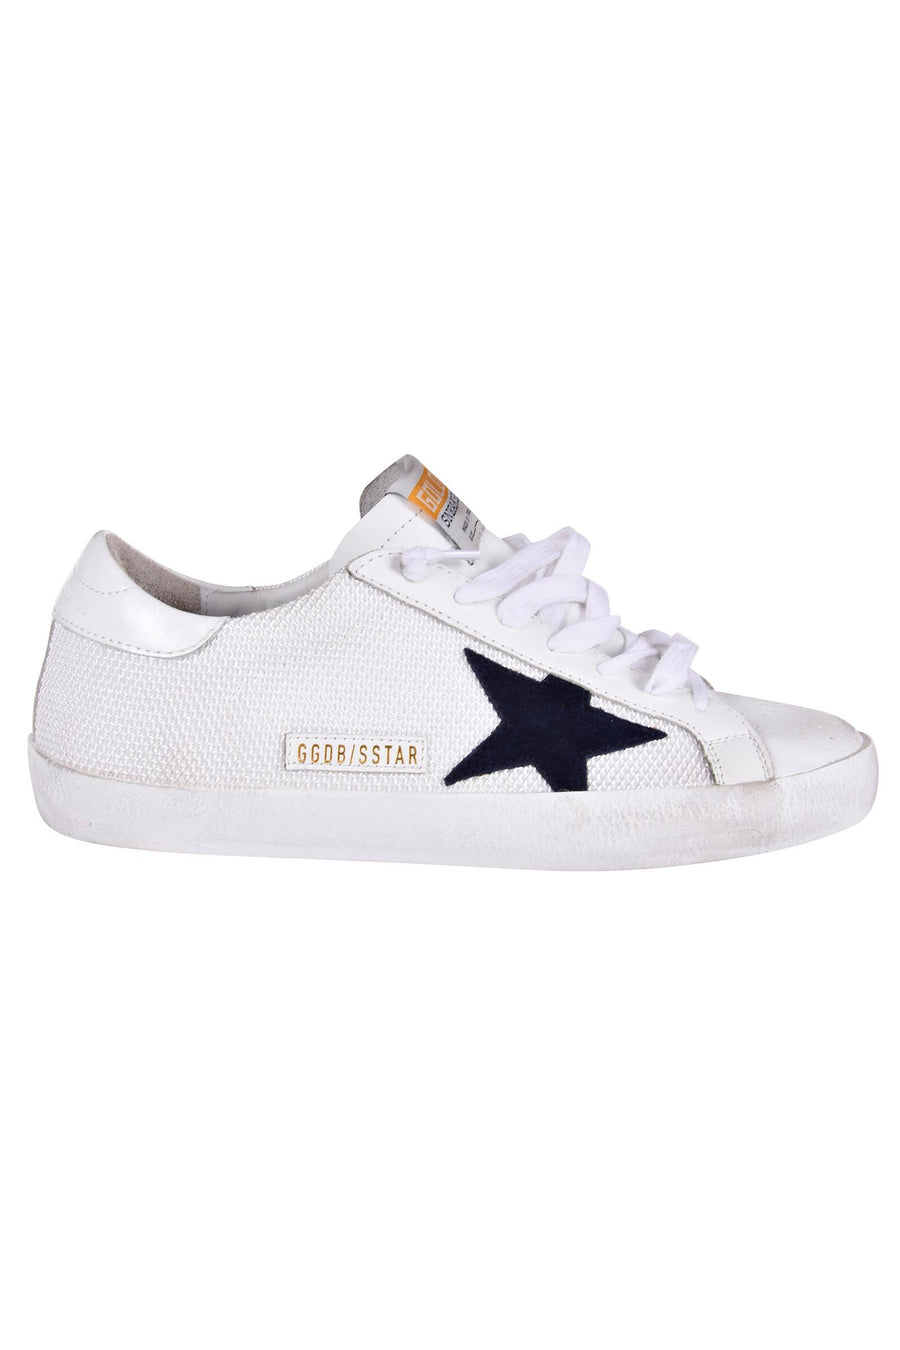 Superstar - White Cord Gum Sneakers